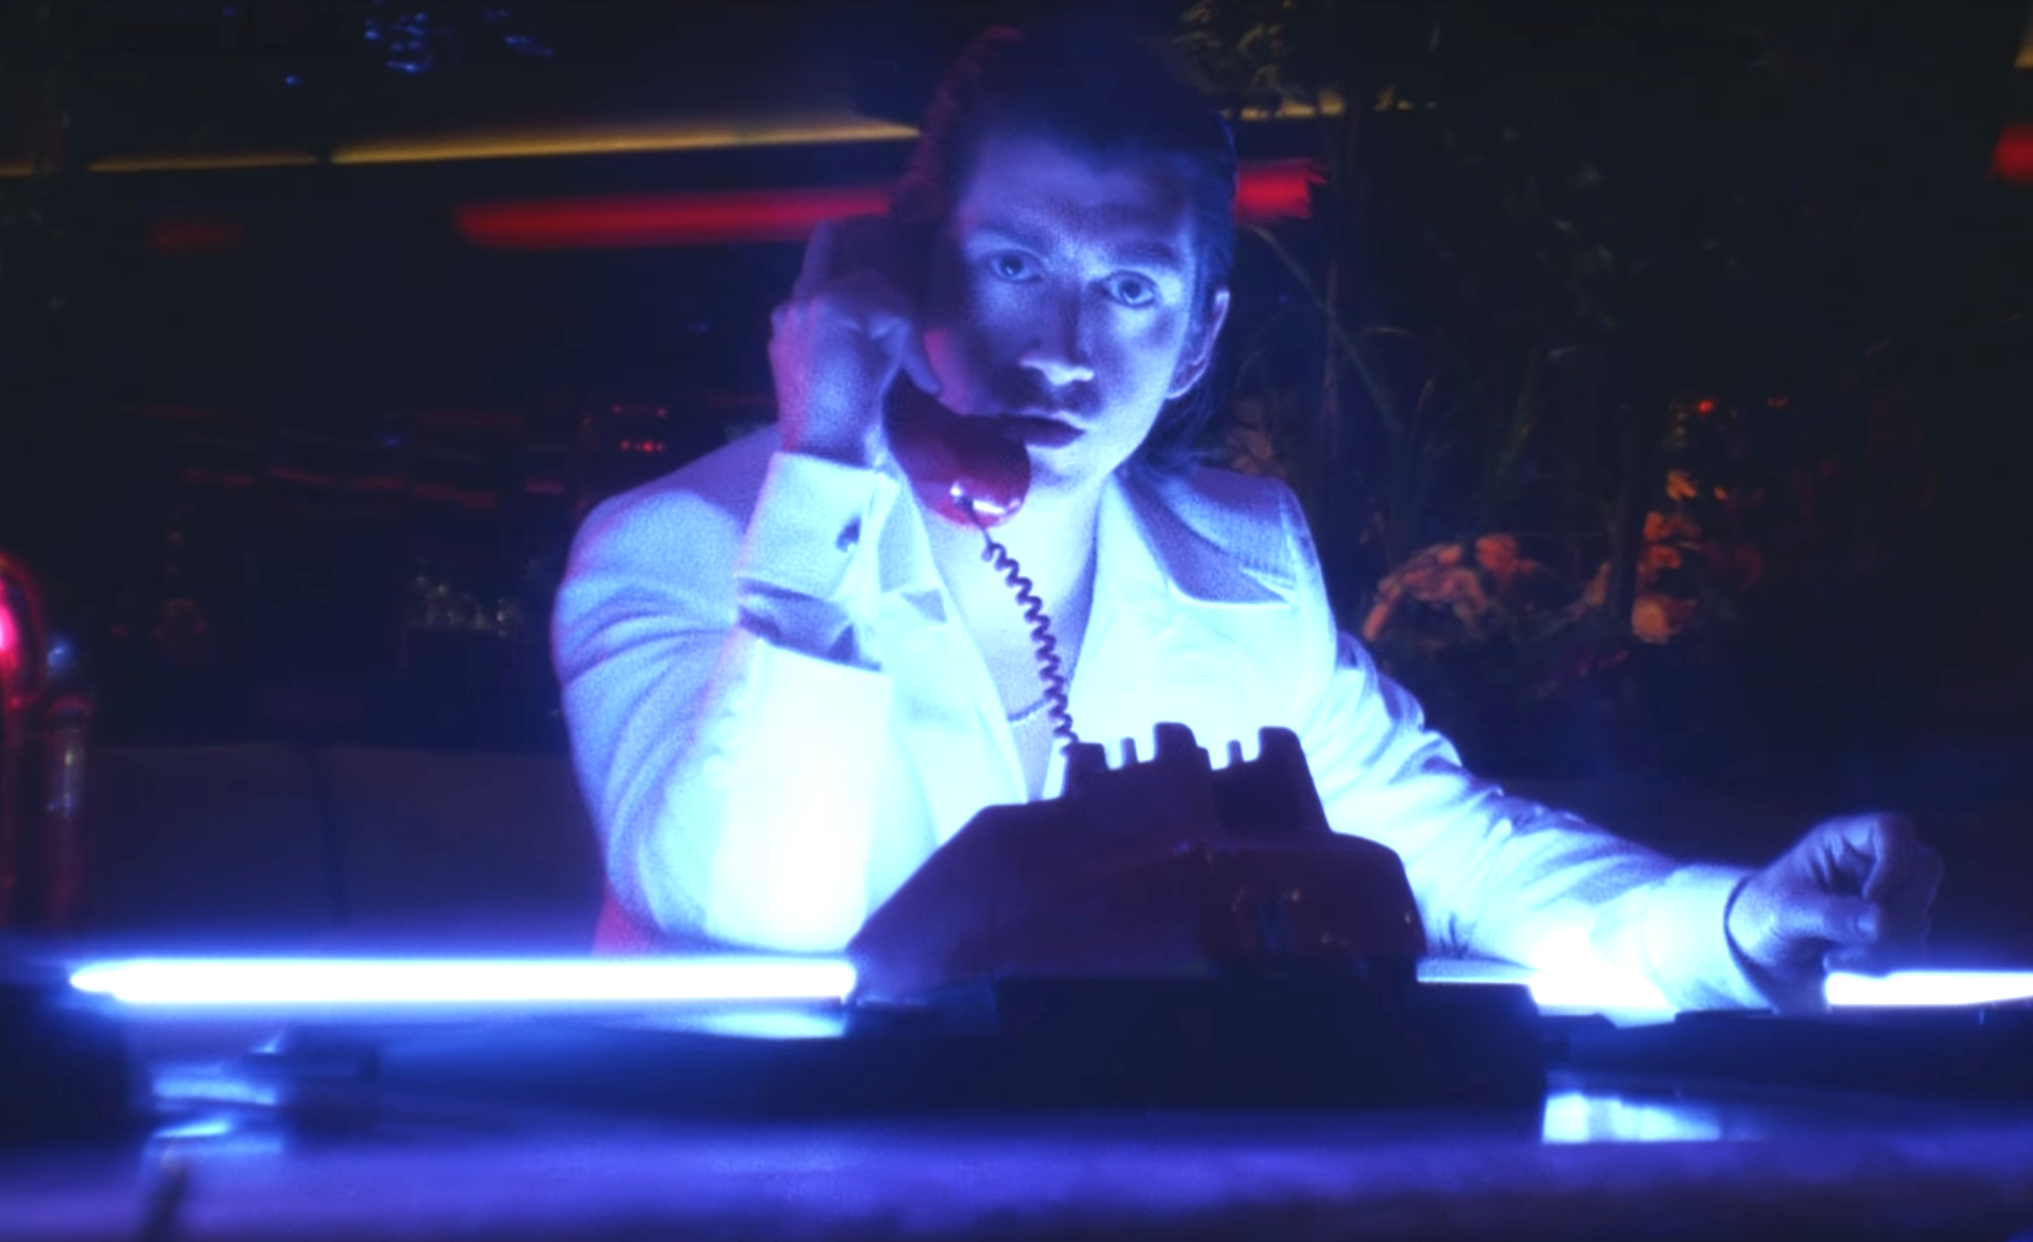 Watch the video for Arctic Monkeys' 'Tranquility Base Hotel & Casino'